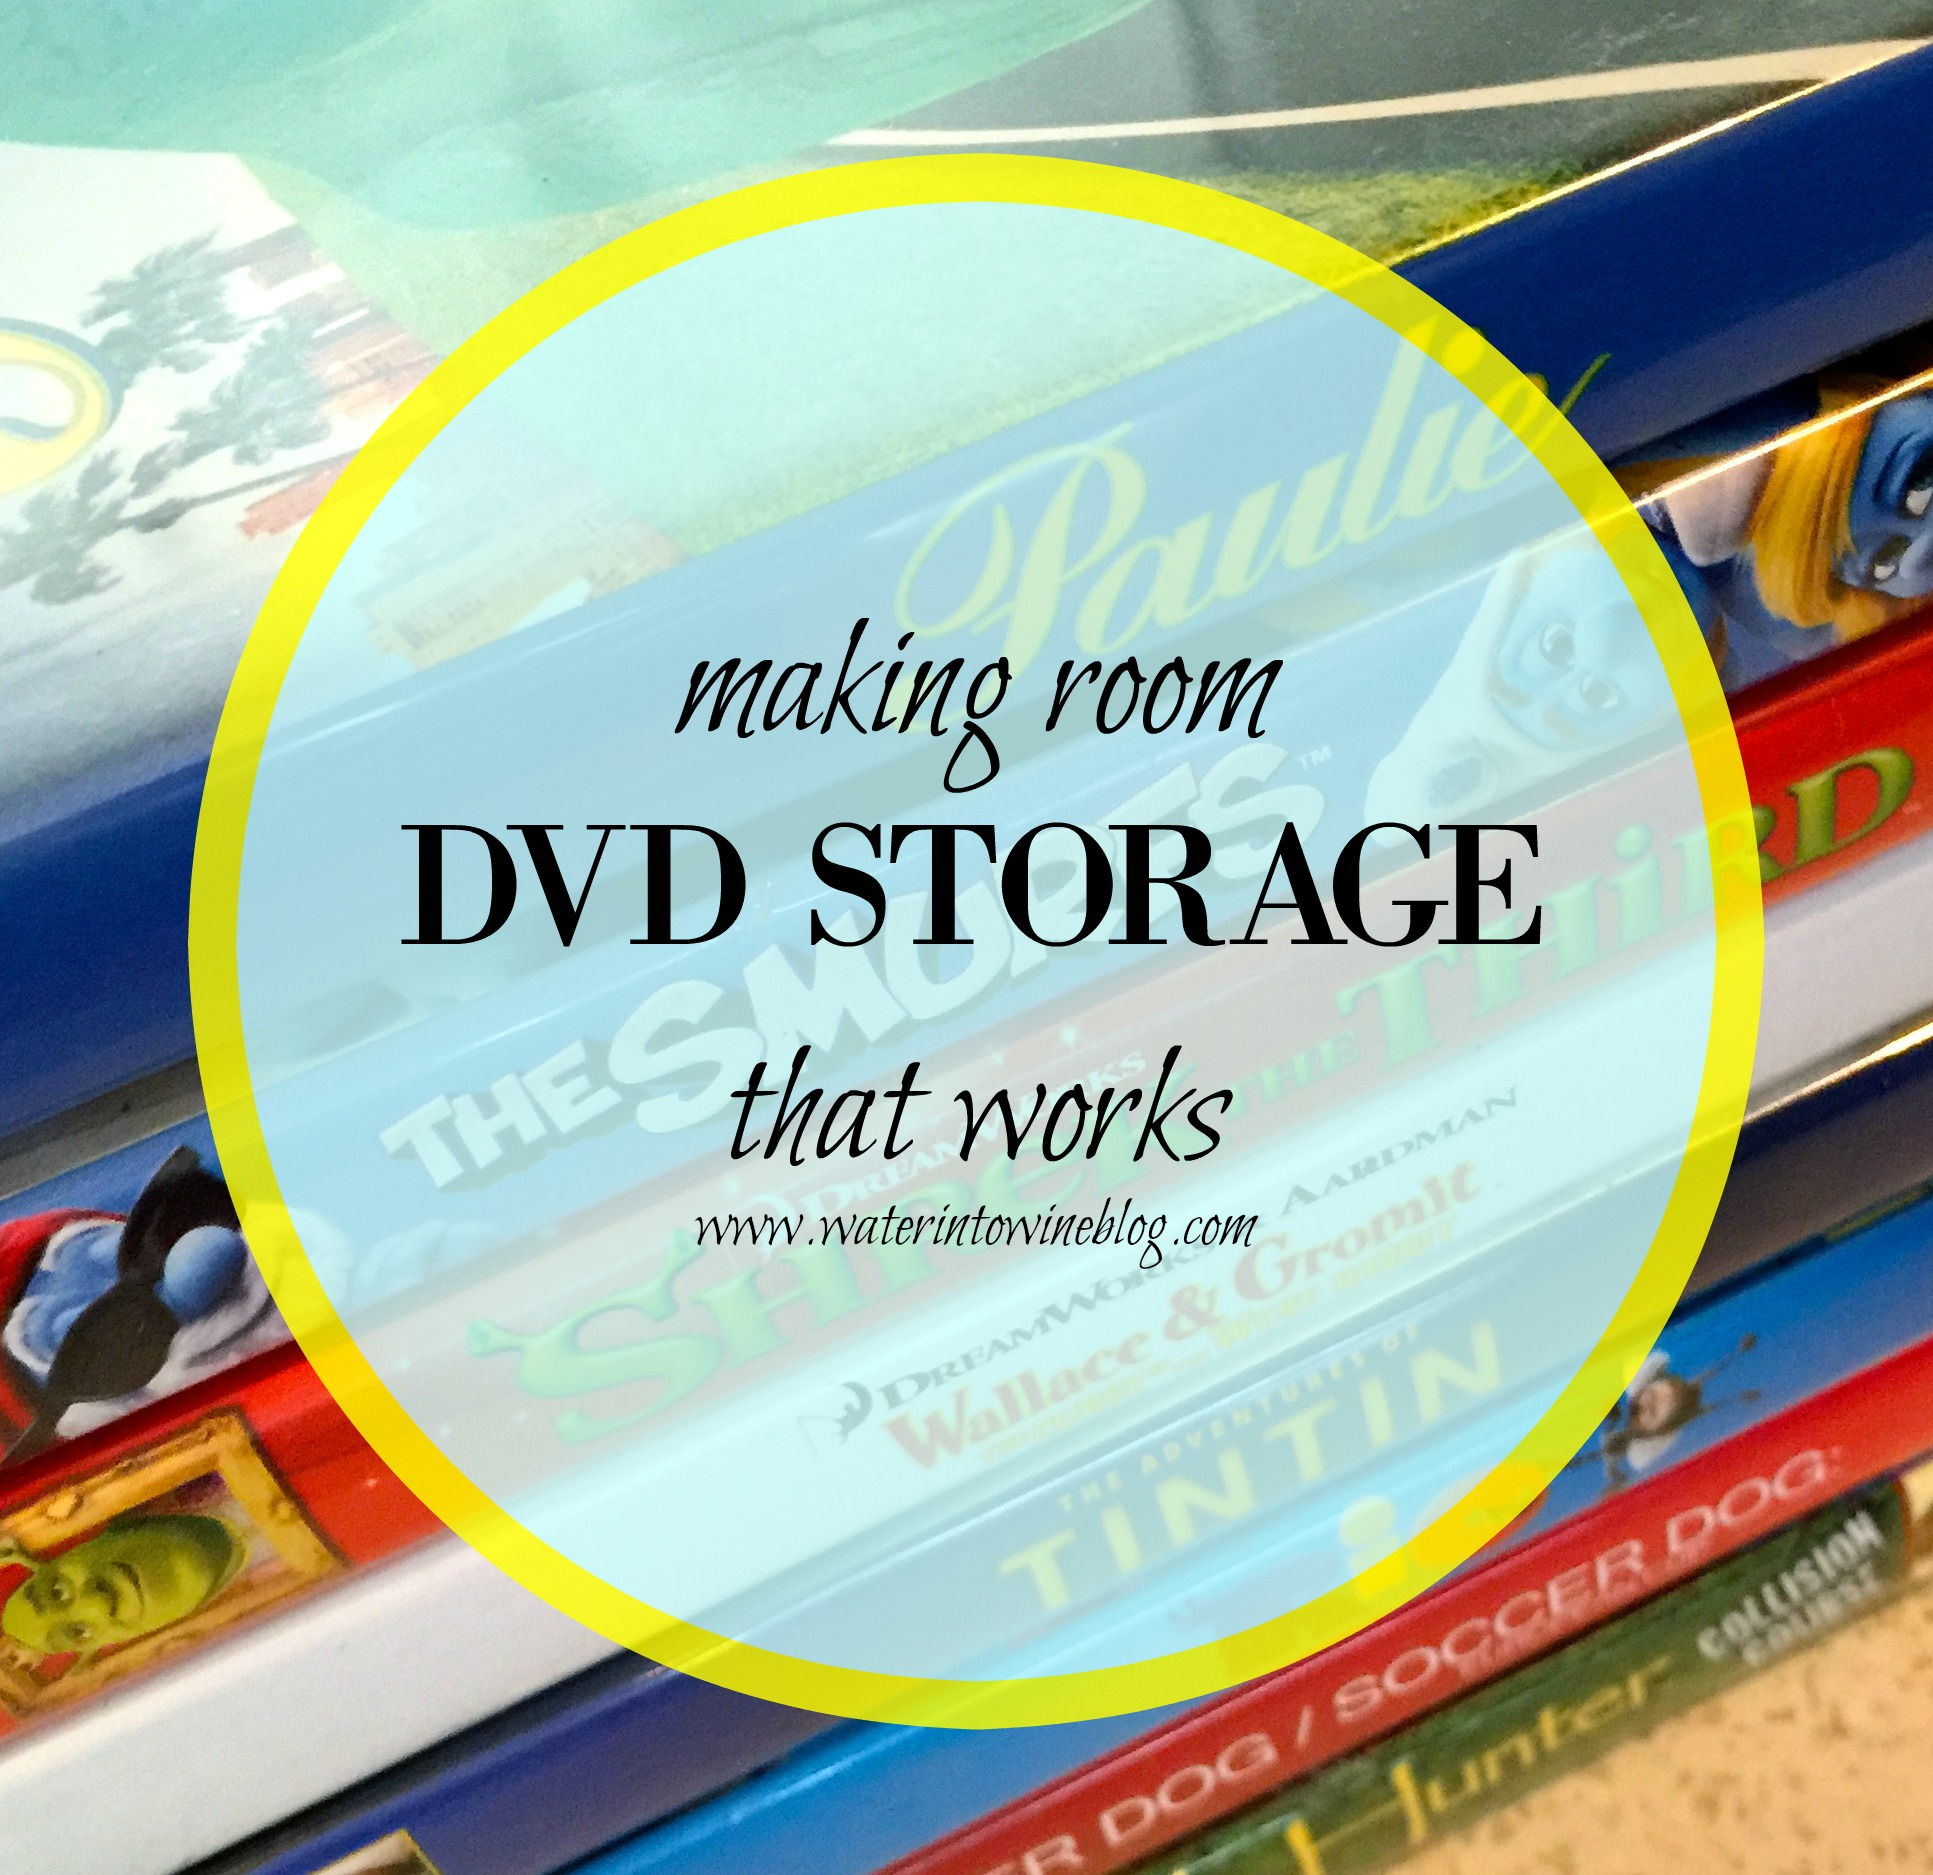 DVD Storage That Works